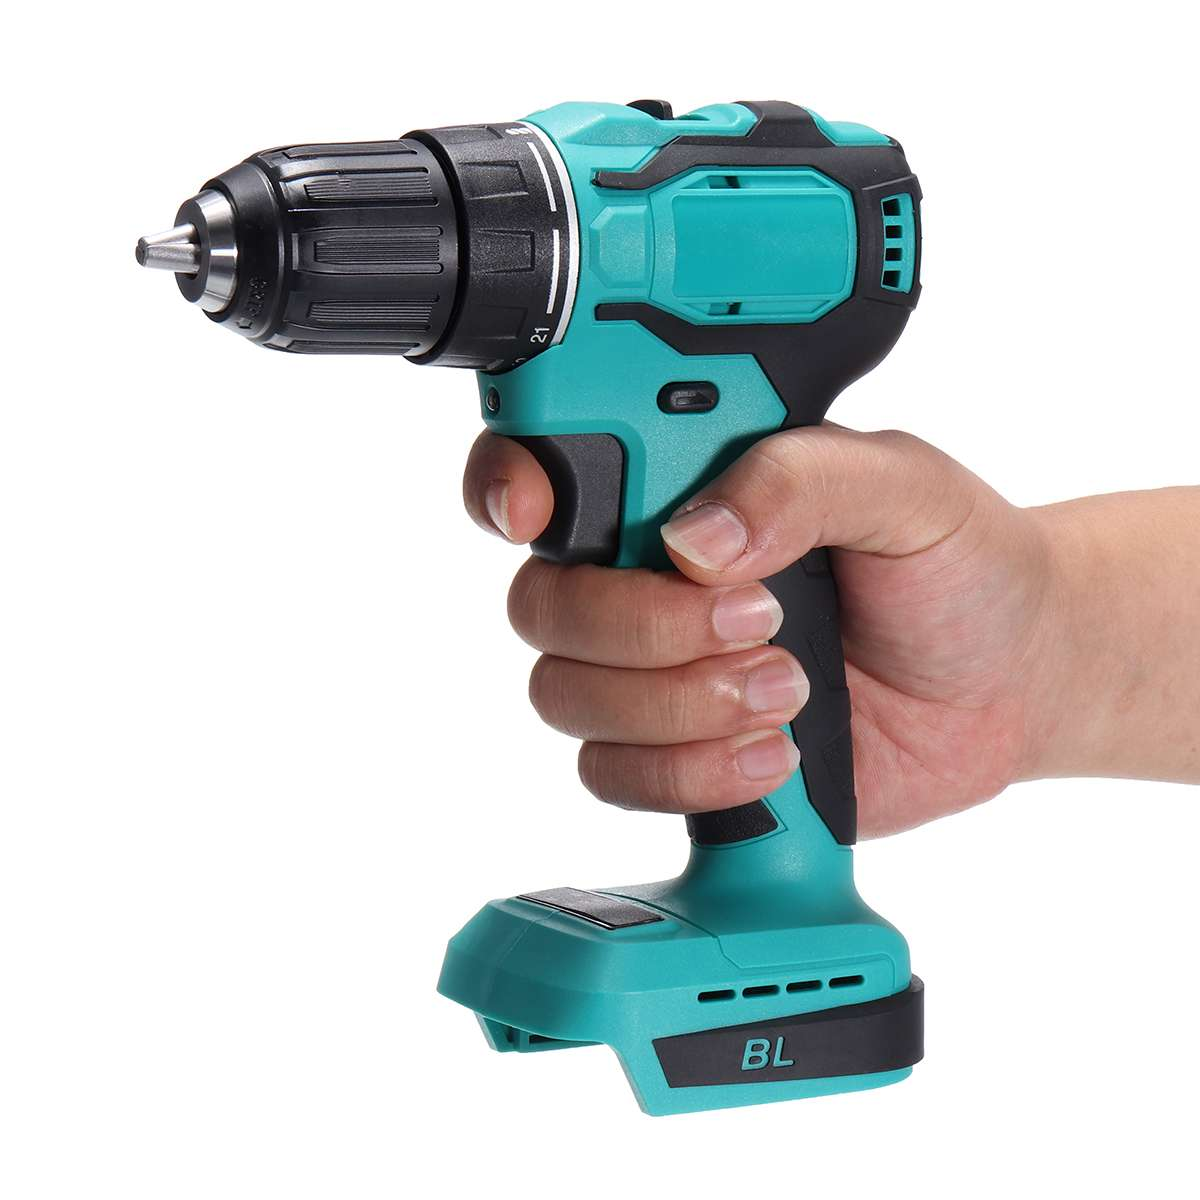 18V 90Nm 13mm Electric Cordless Brushless Impact Drill Rechargable DIY Power Tool Hammer Drill Screwdriver For Makita Battery